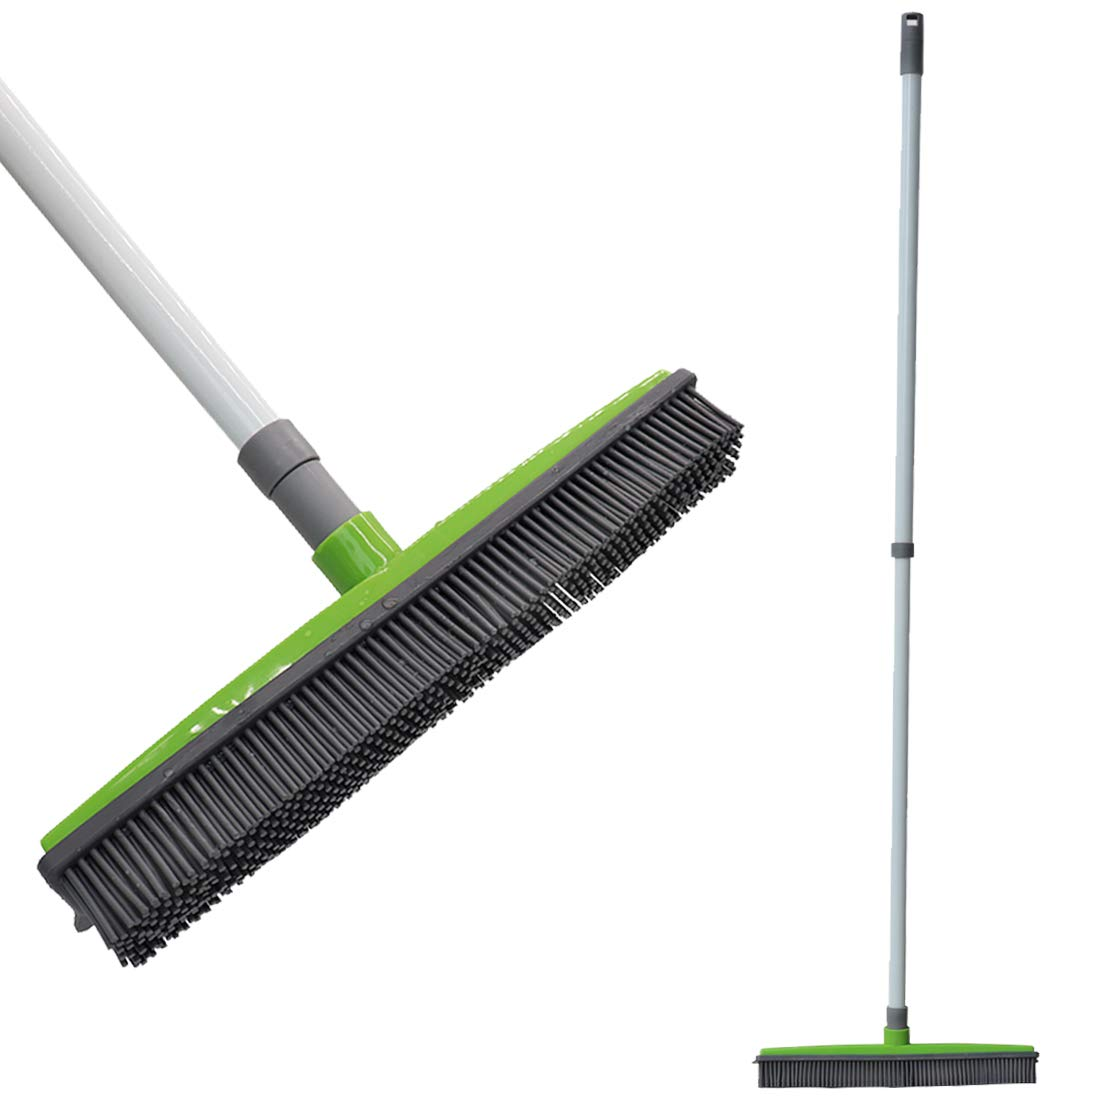 FamilyDate 2.3 ft to 4.5 ft TPR Natural Telescoping Handle Pet Hair Remover Rubber Broom with Squeegee, Push Broom Carpet Broom, Pet Hair Removal-No Dead Angle Cleaning